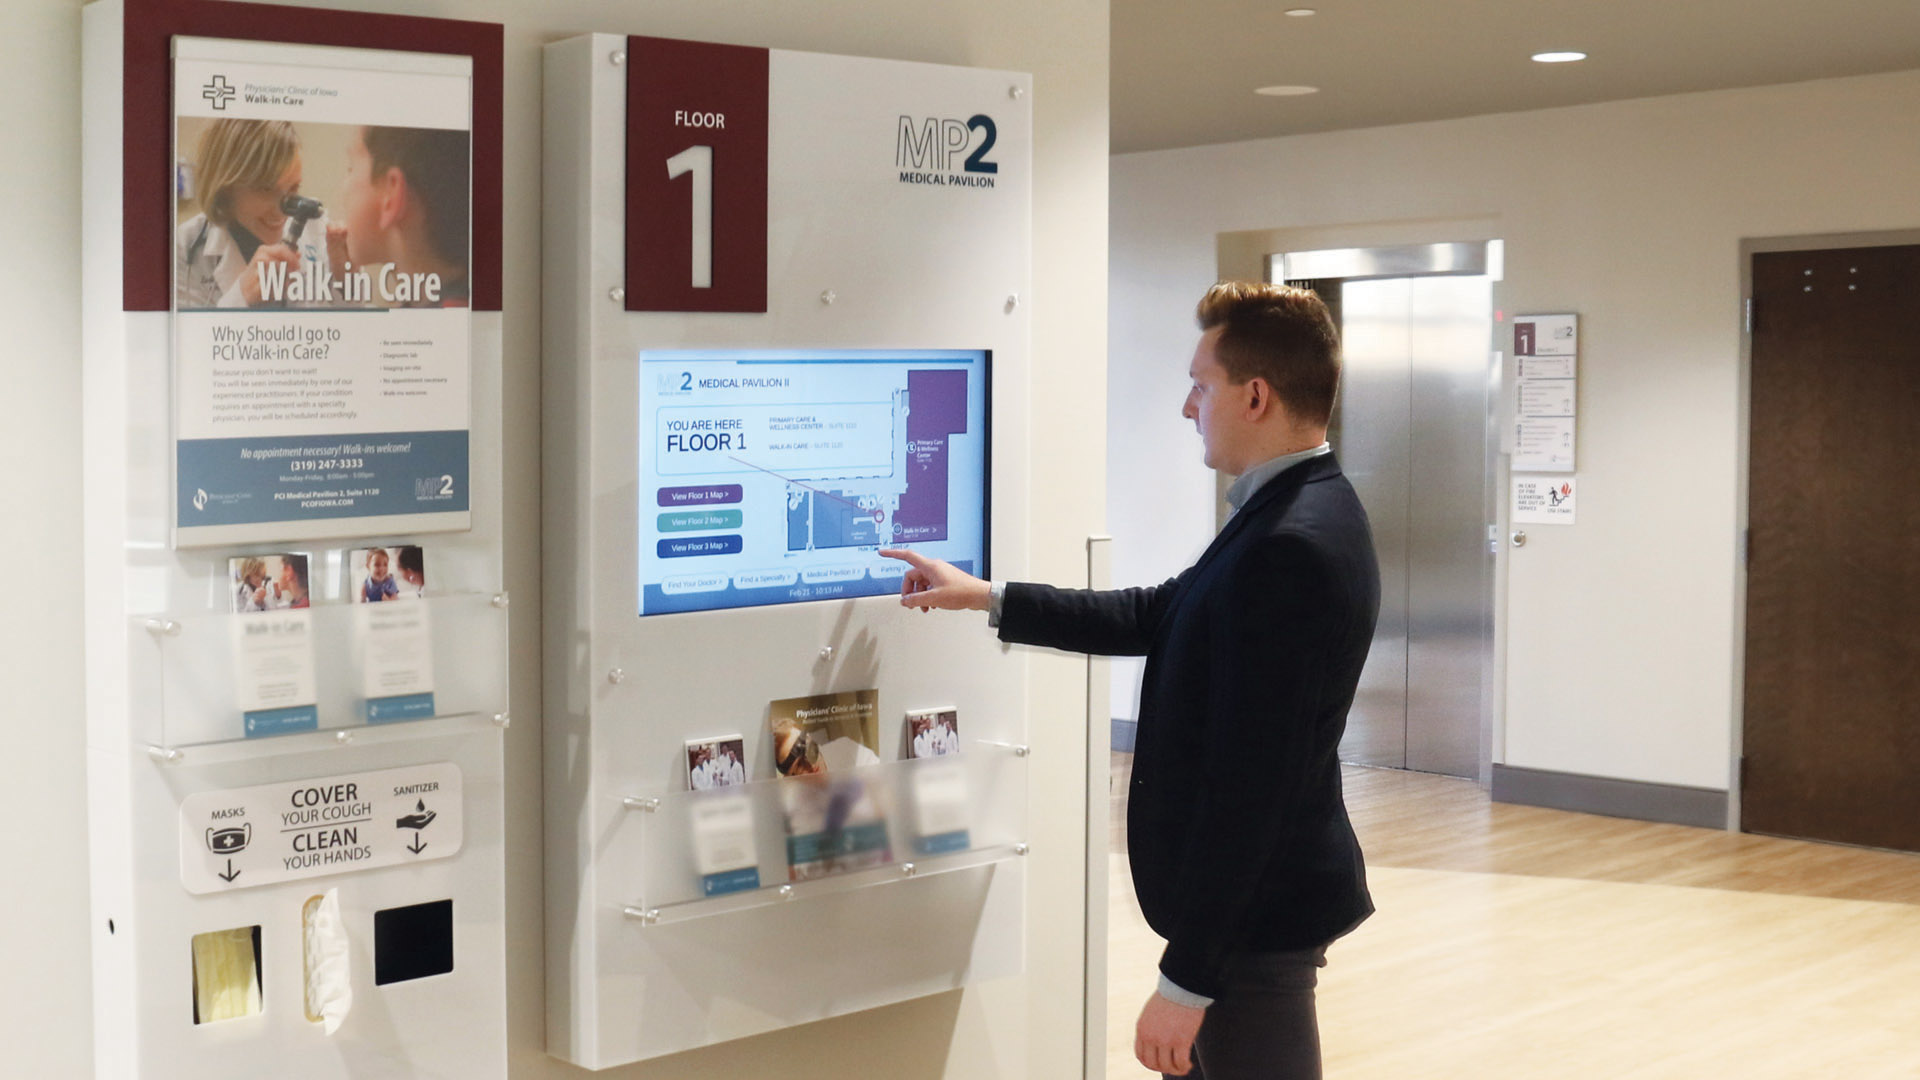 Digital_Wayfinding_Touchscree_Interactive_Signage_PCI